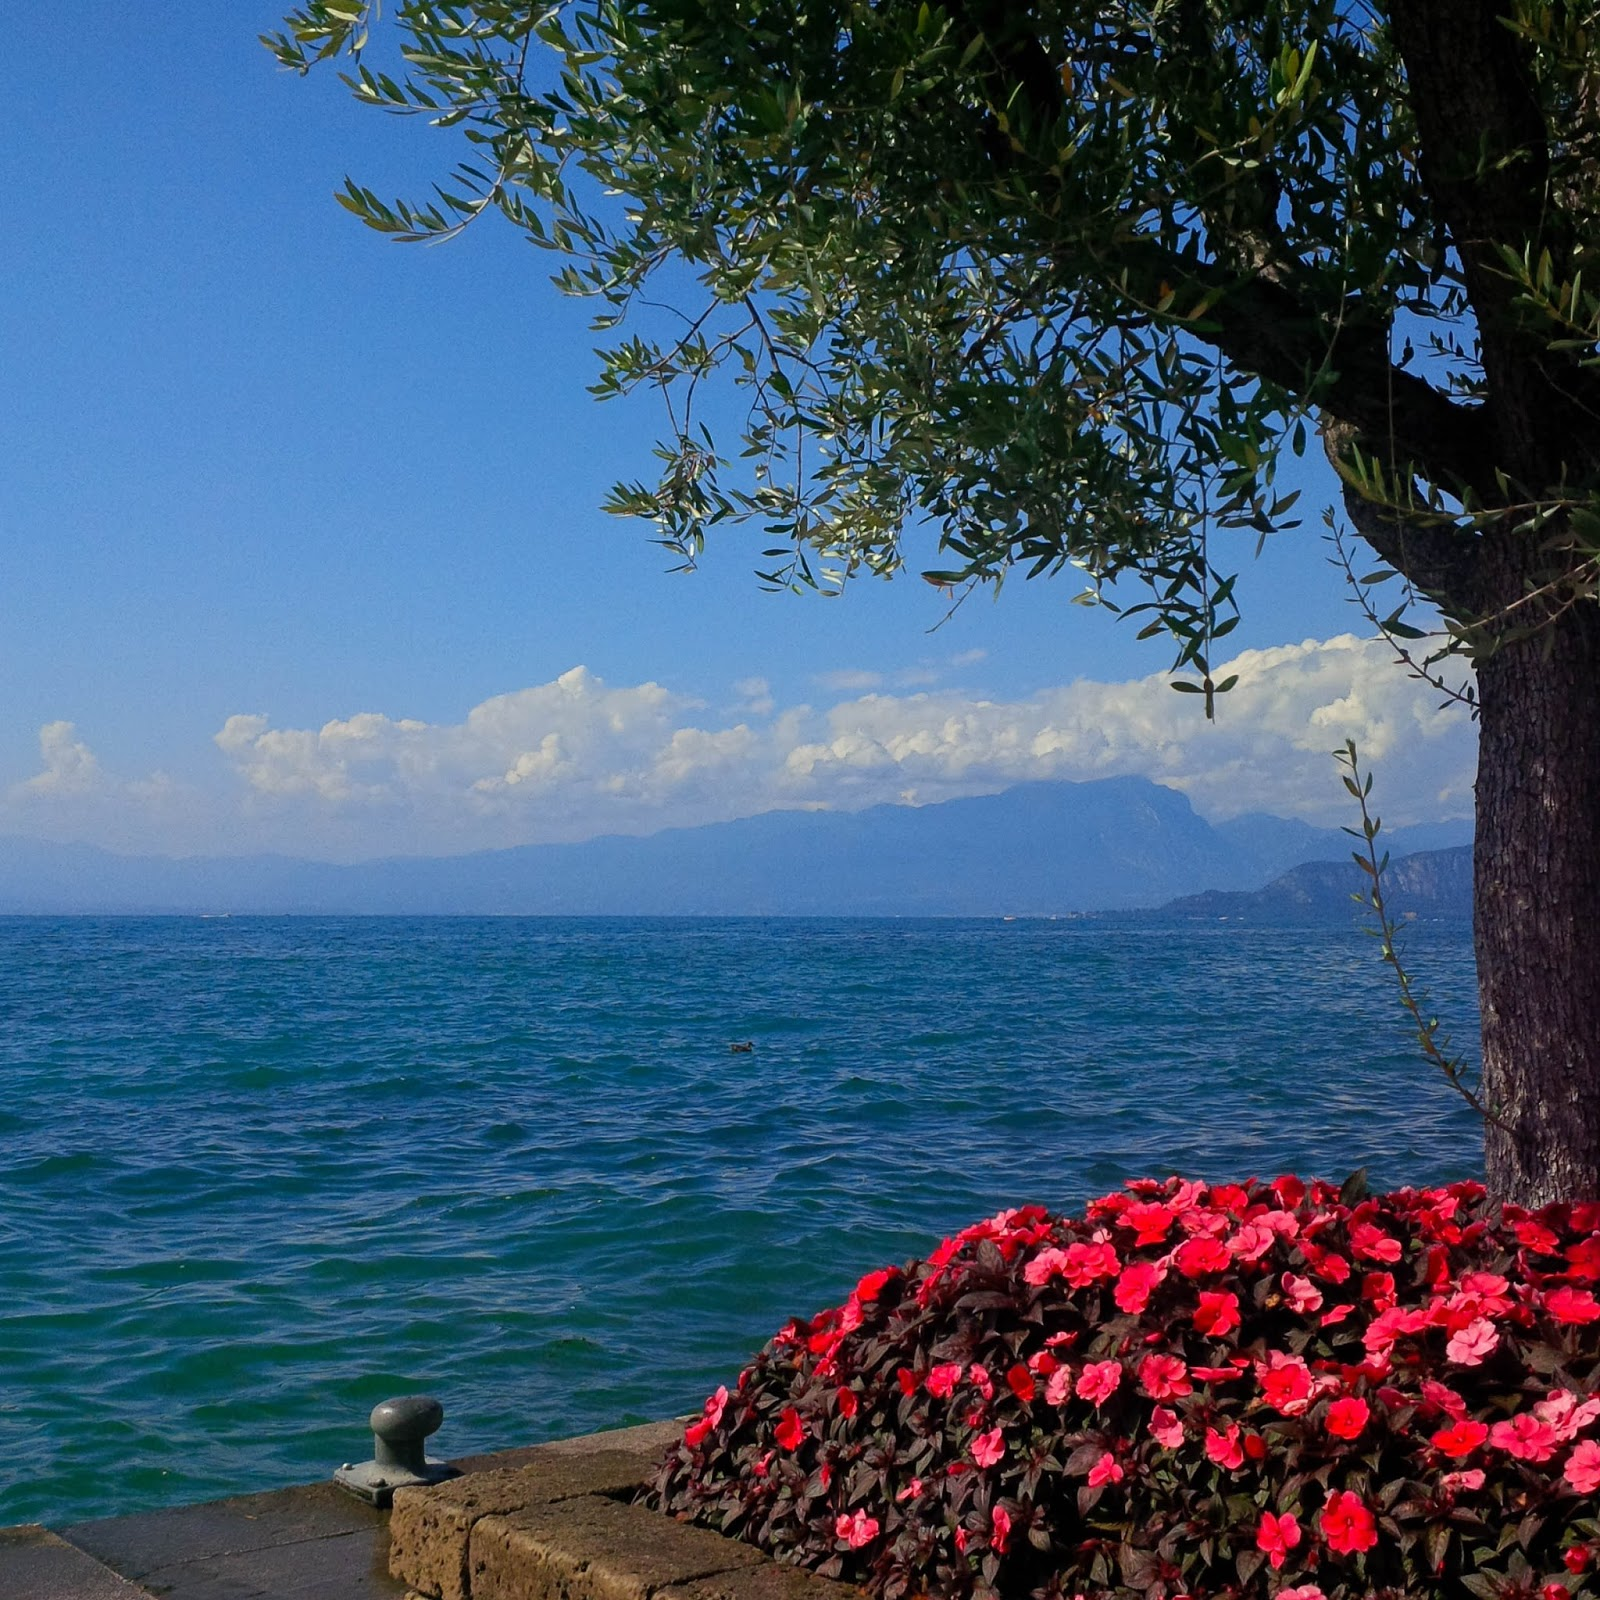 Lake Garda seen from Lazise, Veneto, Italy - www.rossiwrites.com